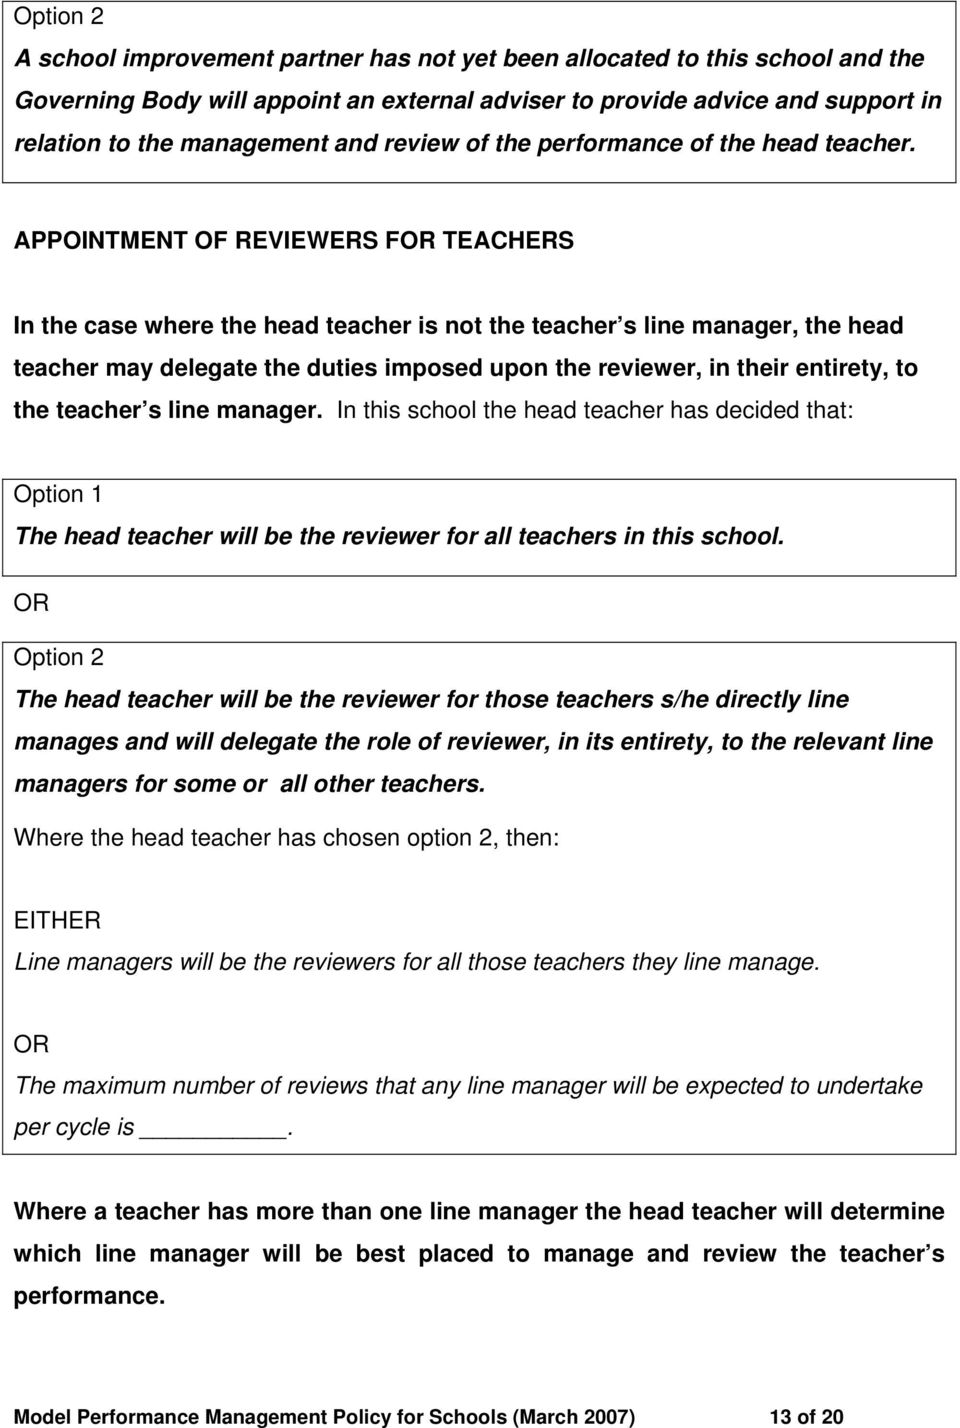 APPOINTMENT OF REVIEWERS F TEACHERS In the case where the head teacher is not the teacher s line manager, the head teacher may delegate the duties imposed upon the reviewer, in their entirety, to the